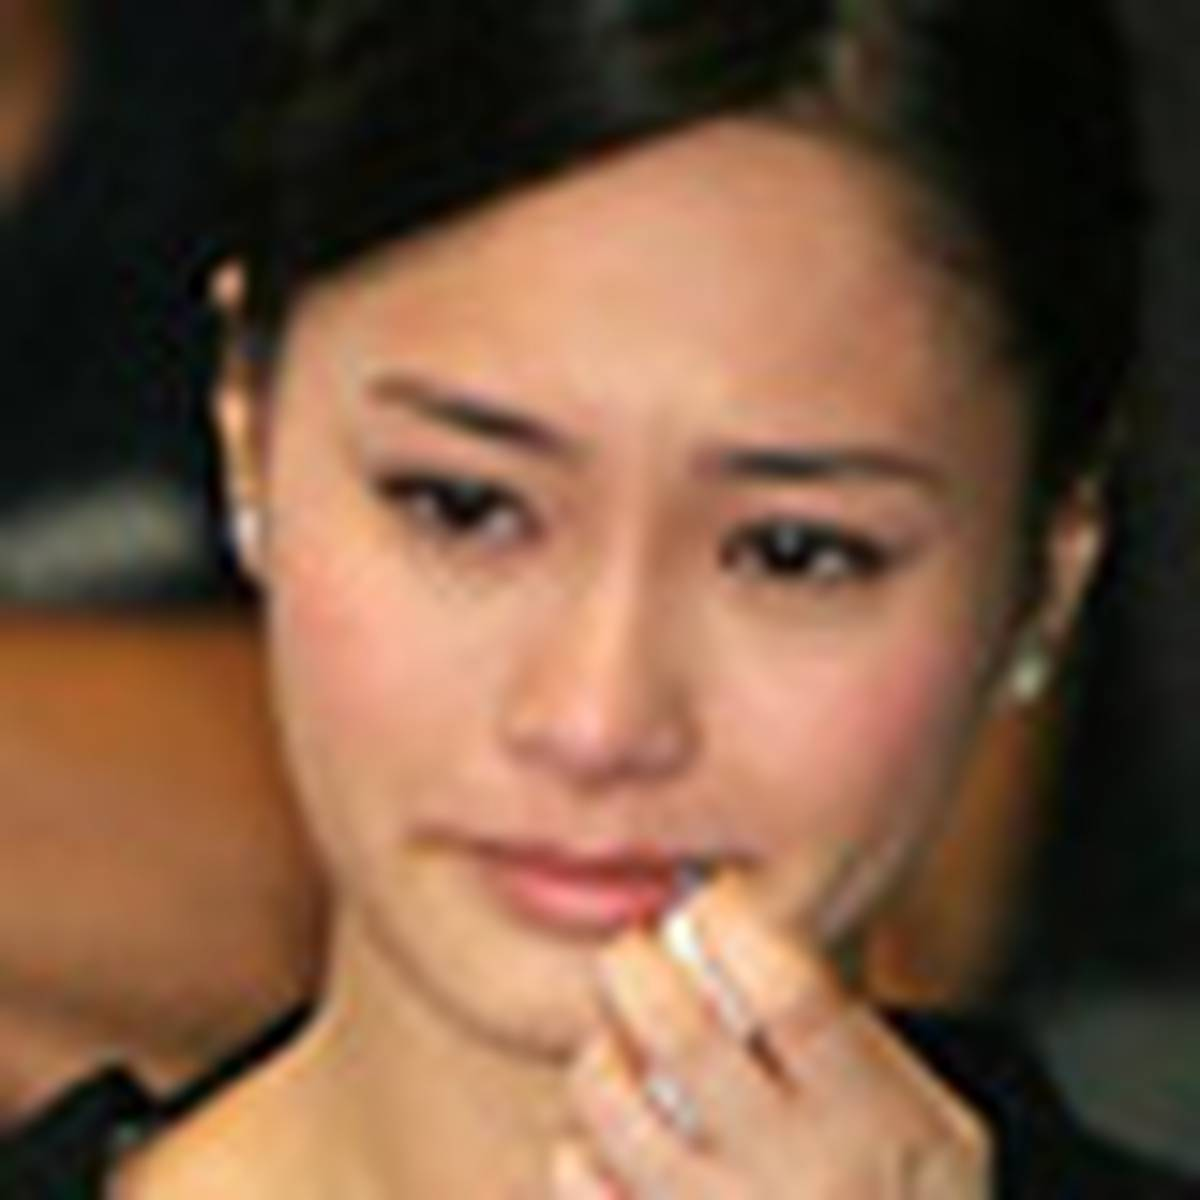 Hong Kong Celebrity Nude 1,000-plus nude pictures stolen from hk star's computer (+